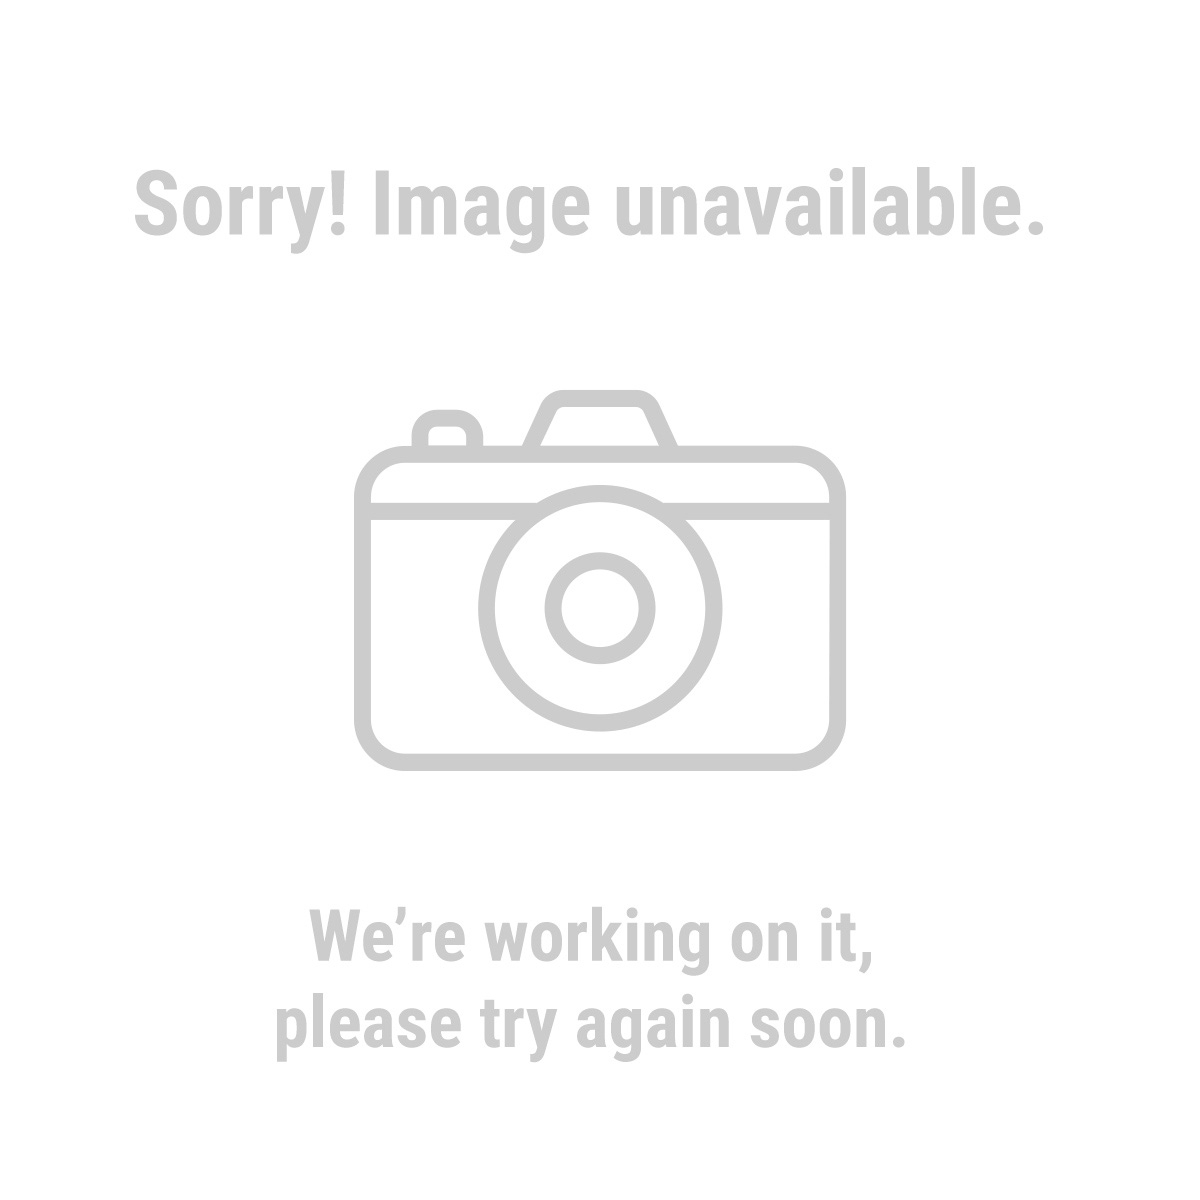 Drill Master 67026 Bare 18 Volt 5-1/2in Cordless Circular Saw